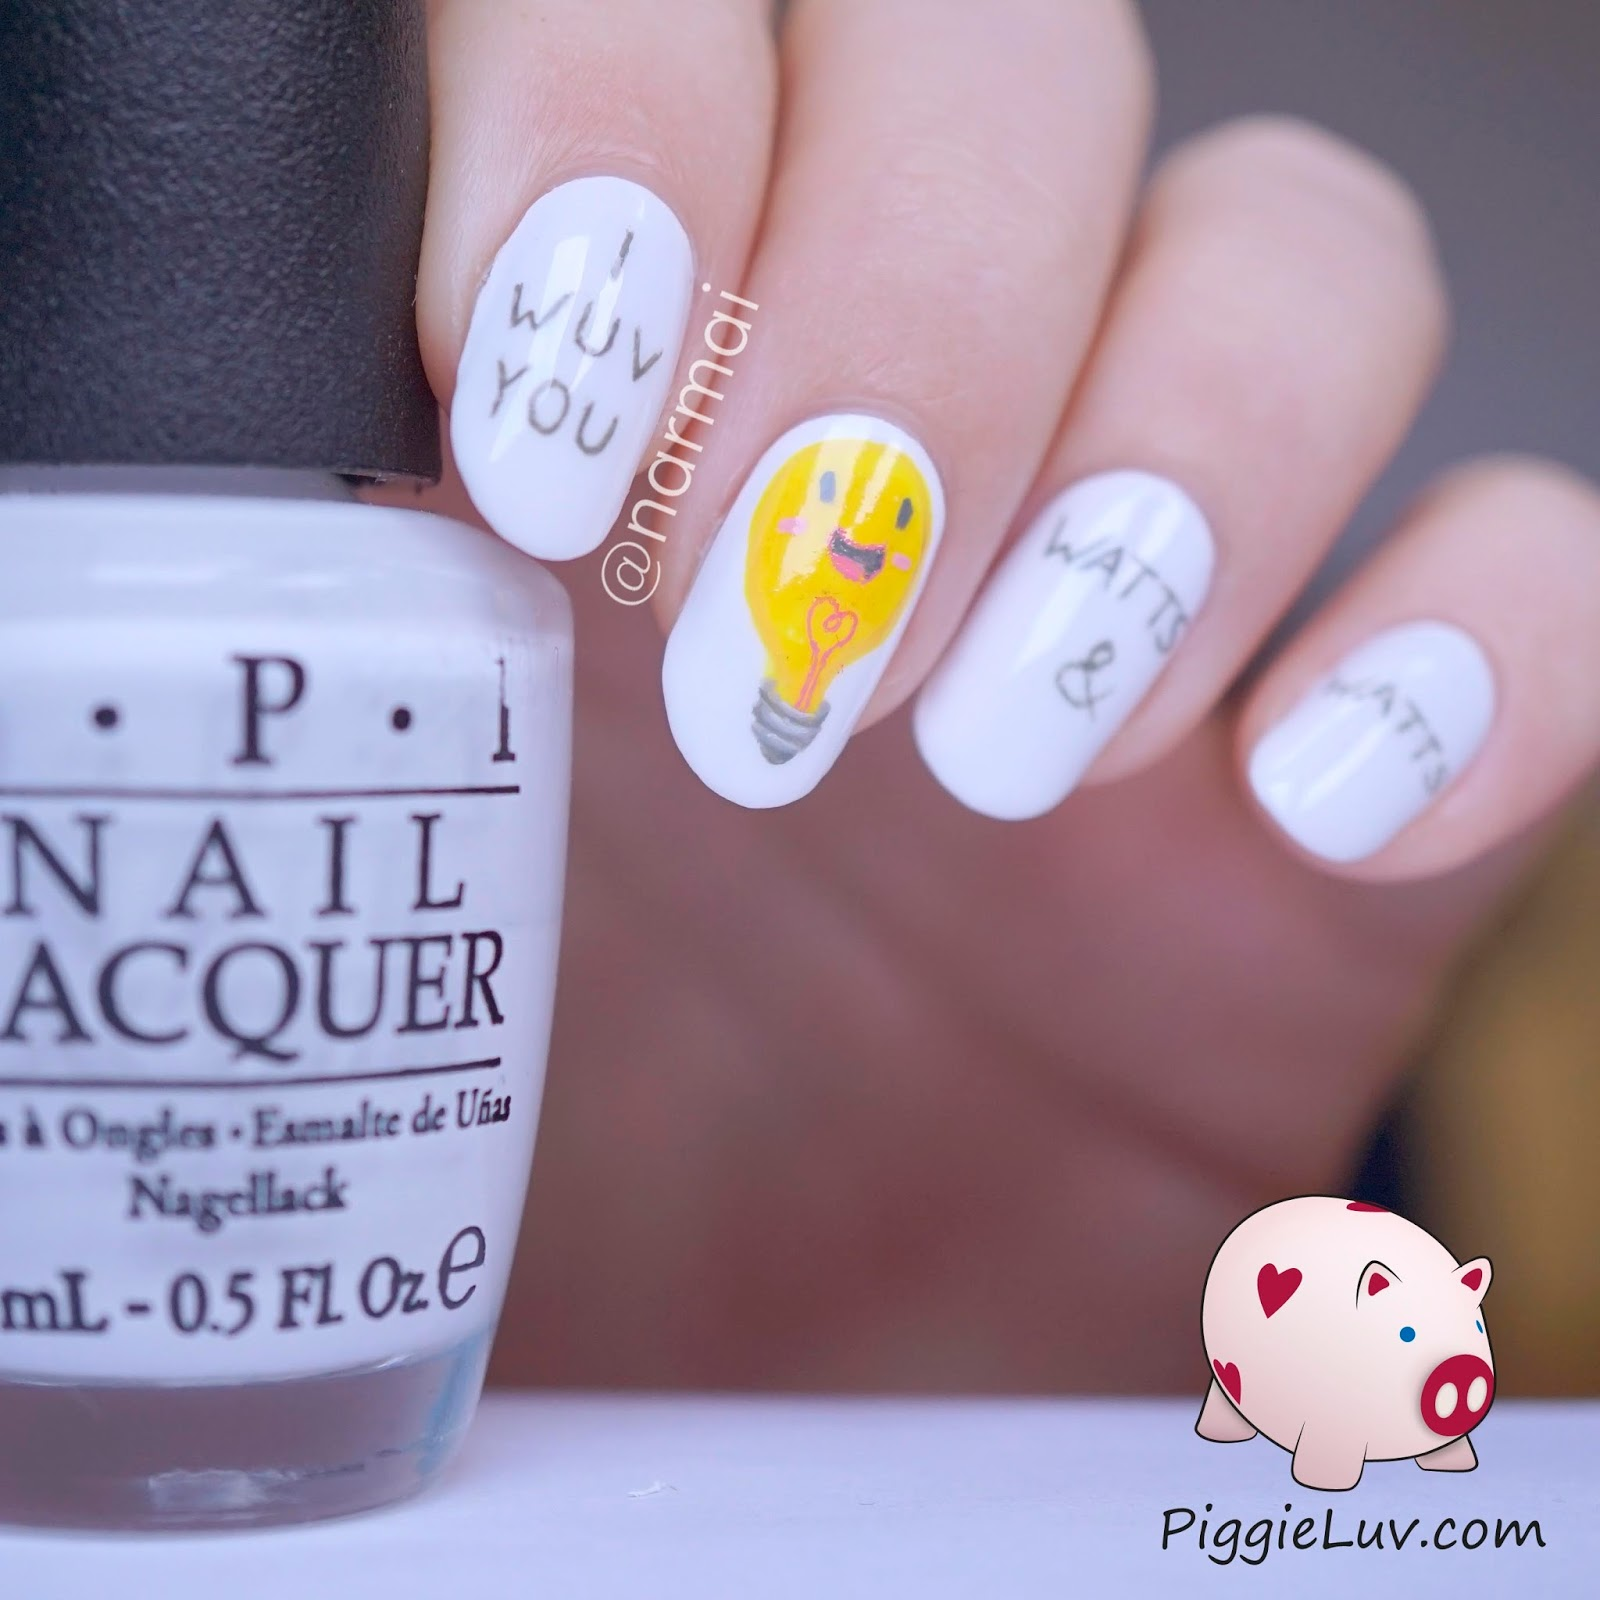 Best friend nail art gallery nail art and nail design ideas best friend nail art choice image nail art and nail design ideas best friend nail art prinsesfo Image collections